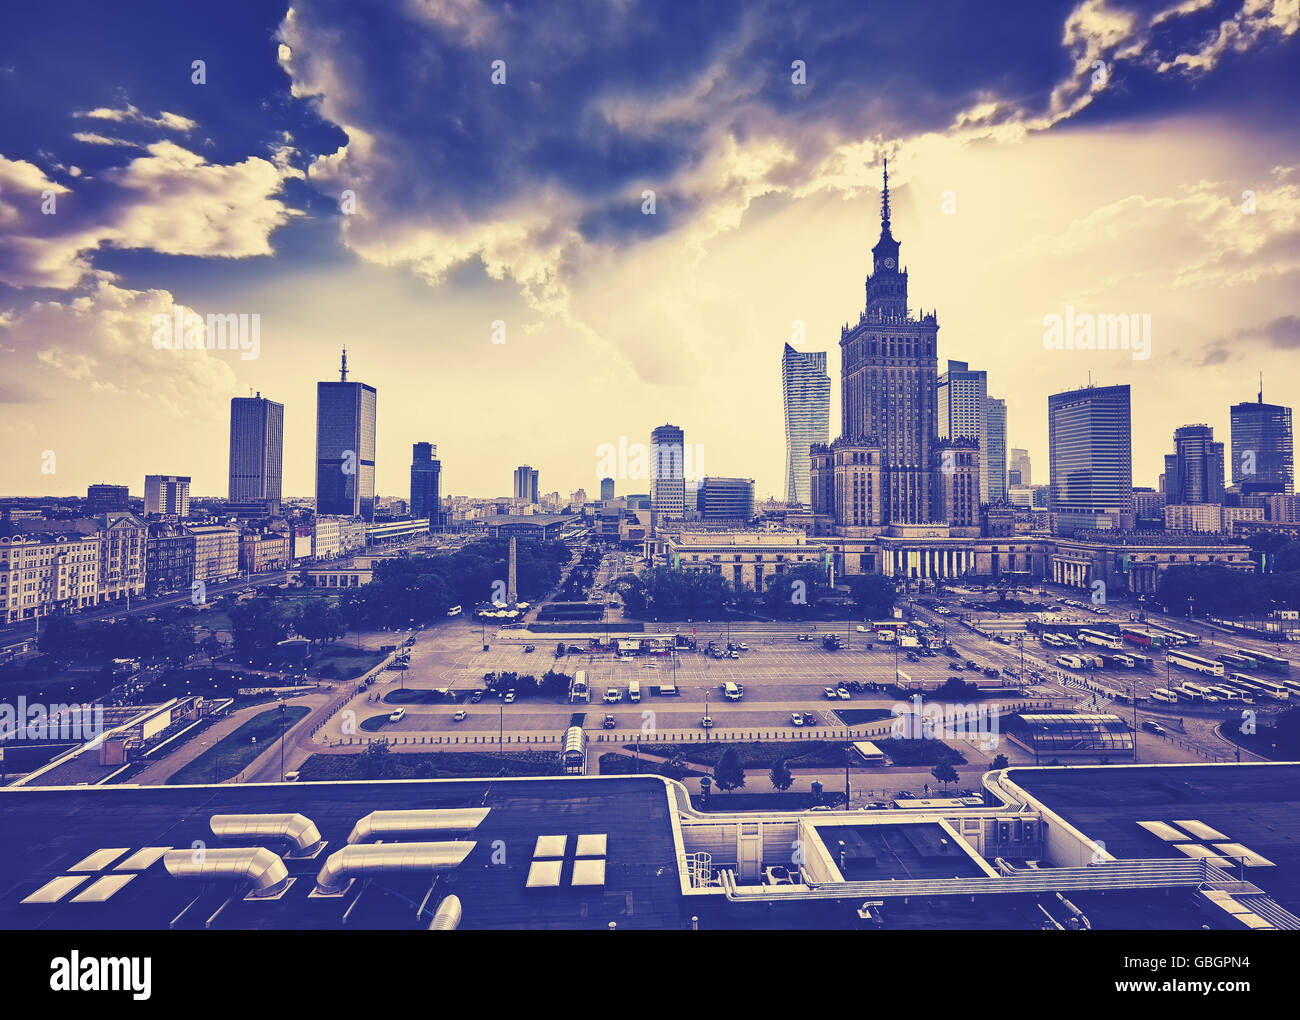 Old grainy film style Warsaw downtown with Palace of Culture and Science and skyscrapers at sunset, Poland. - Stock Image